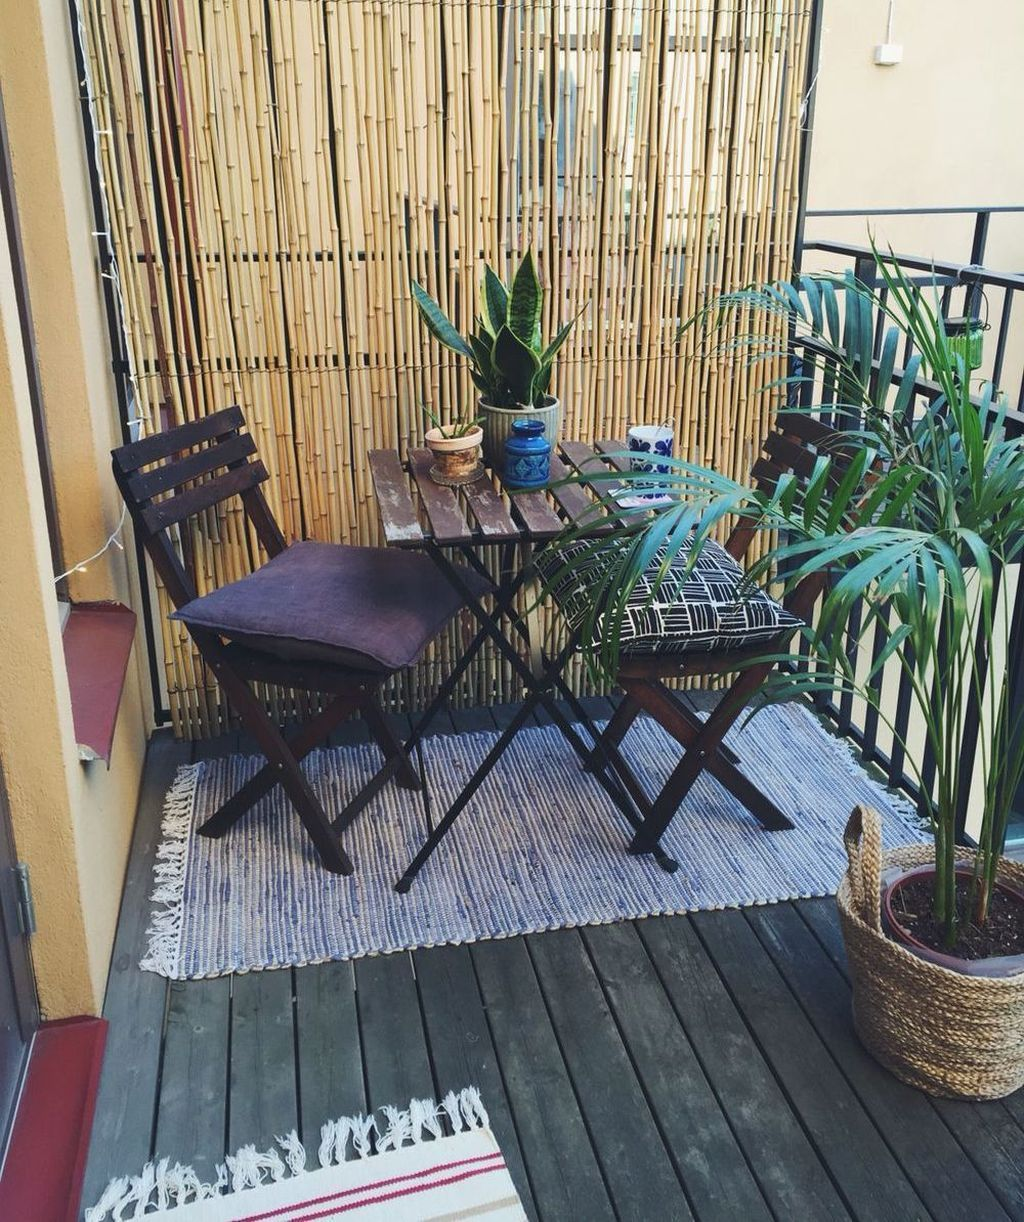 Garden Style Apartment: 50 Inspiring Apartment Patio Décor Ideas